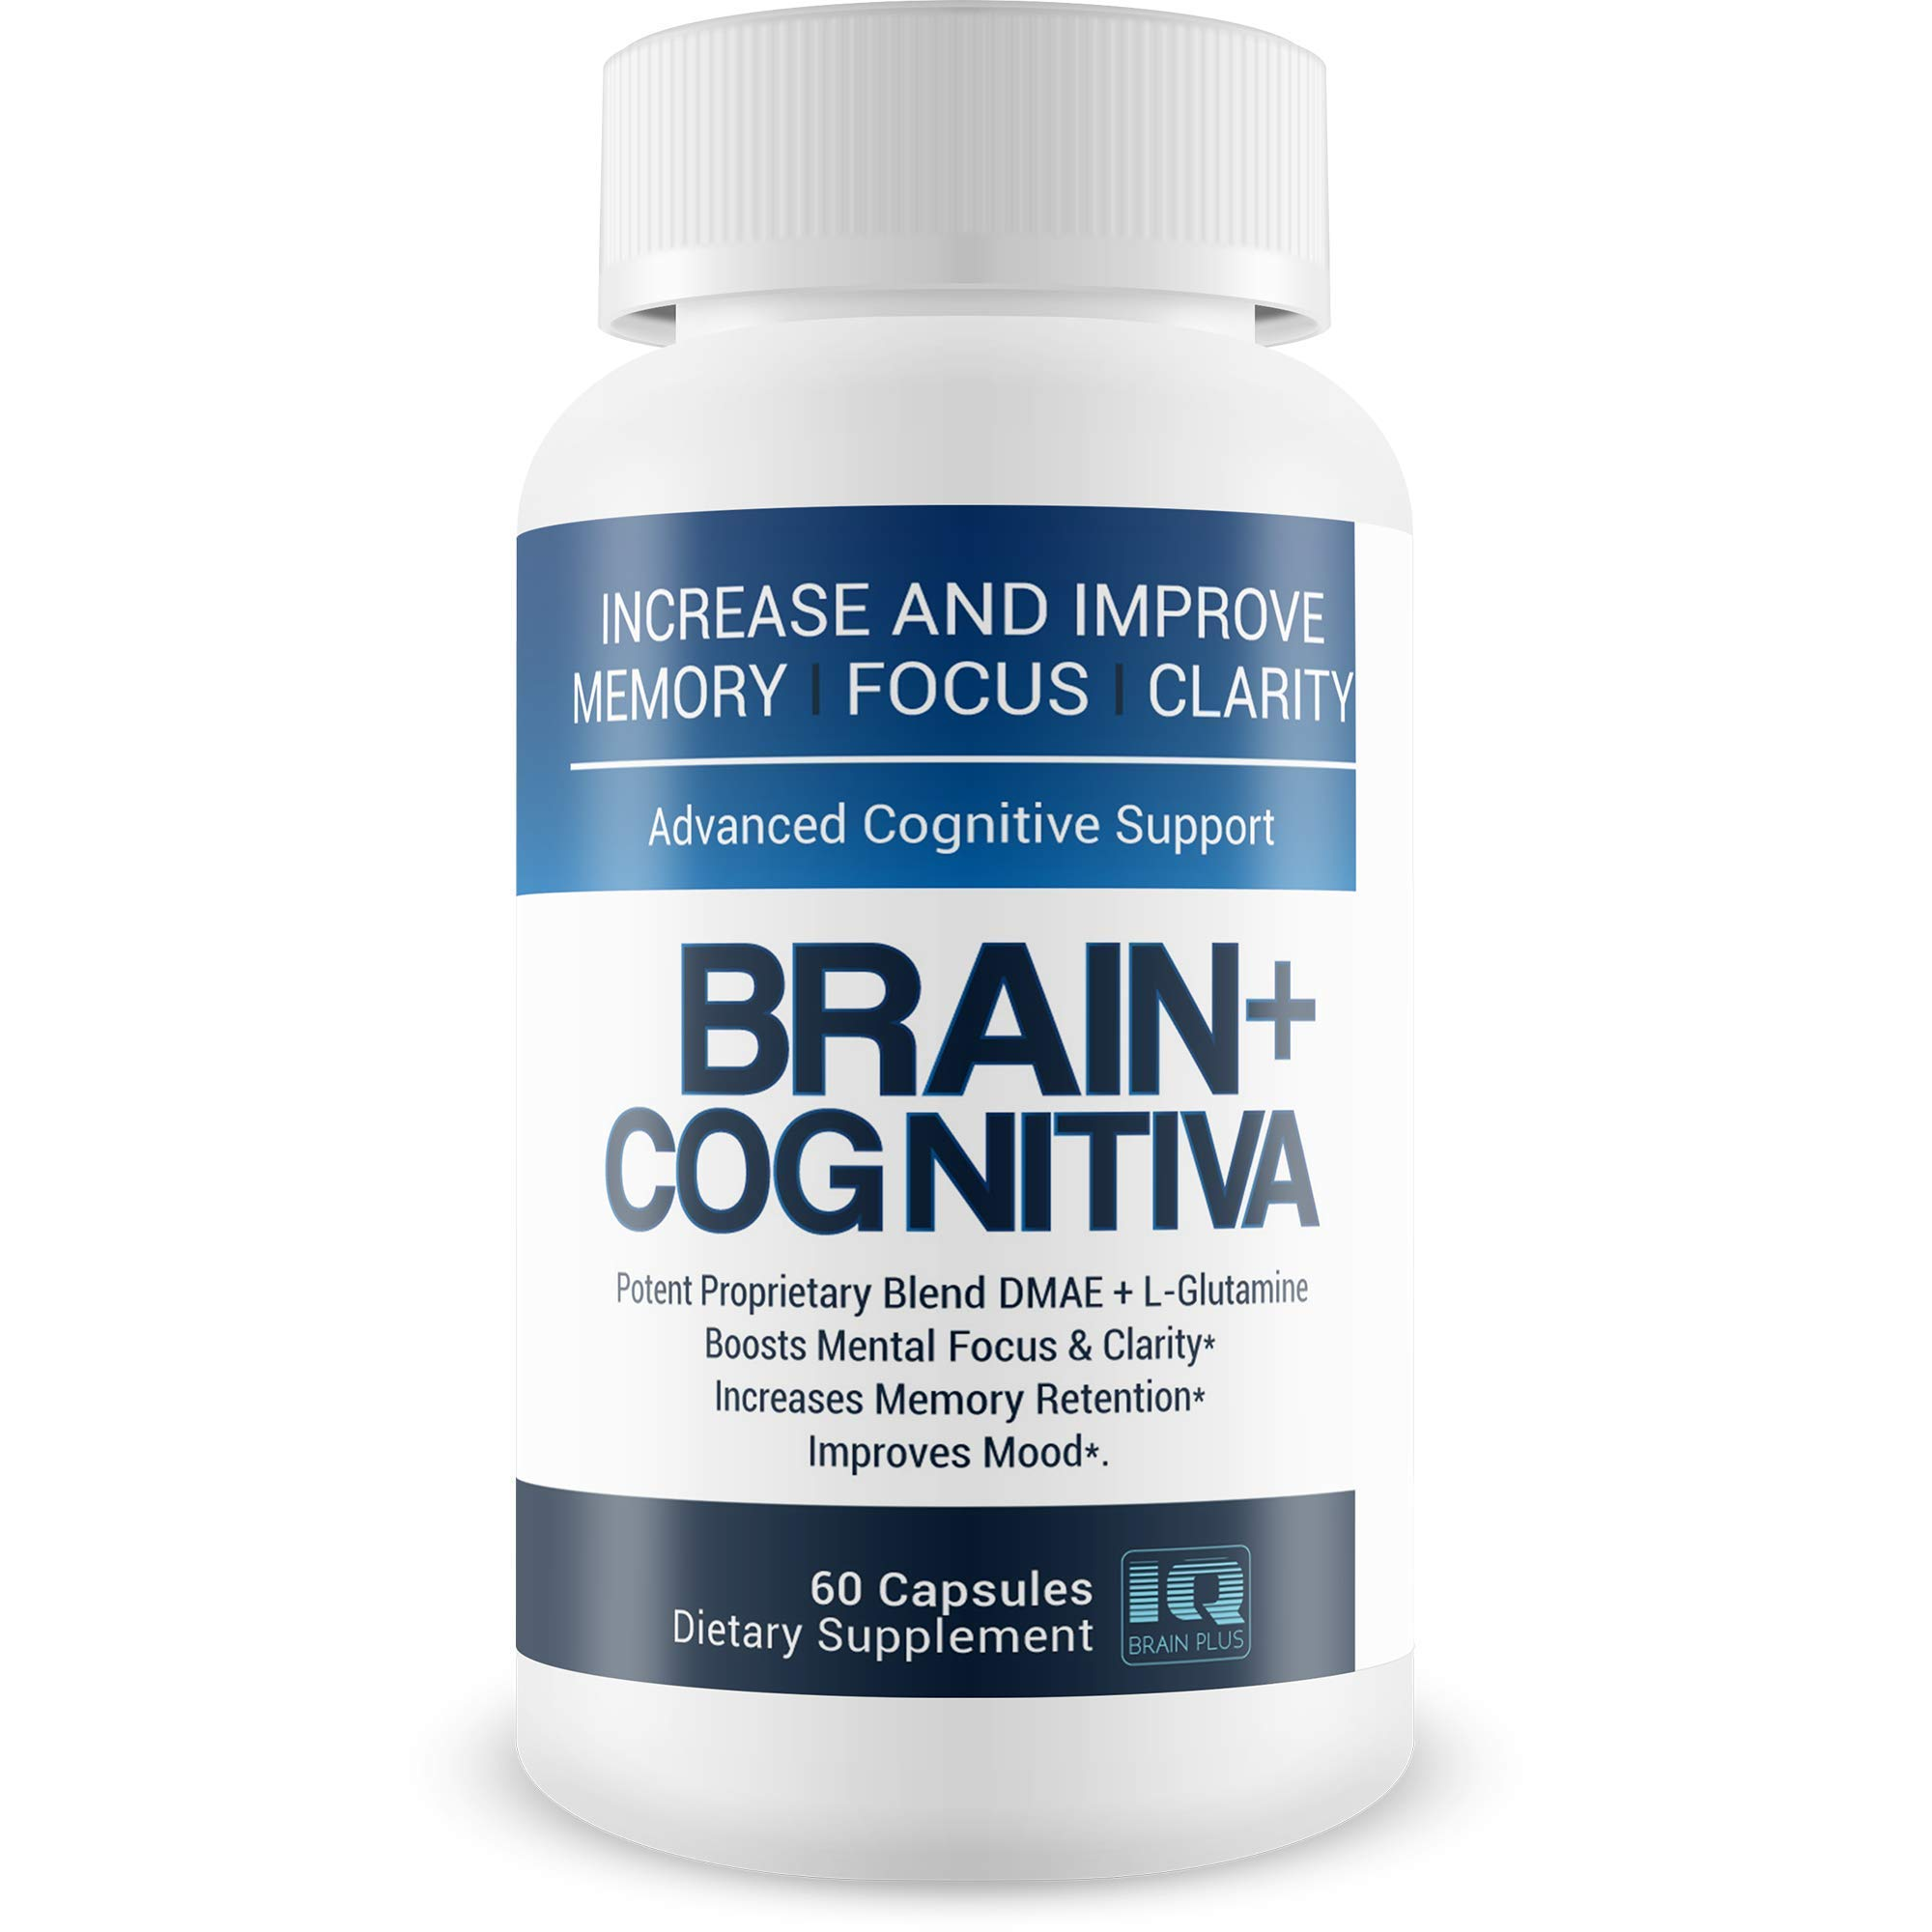 Brain+ Cognitiva - Advanced Cognitive Support - Help Increase and Improve Memory, Boost Mental Focus, and Support Mental Clarity - L-Glutamine Capsules for Brain Support and Opti Nootropic Boost by IQ Brain Plus